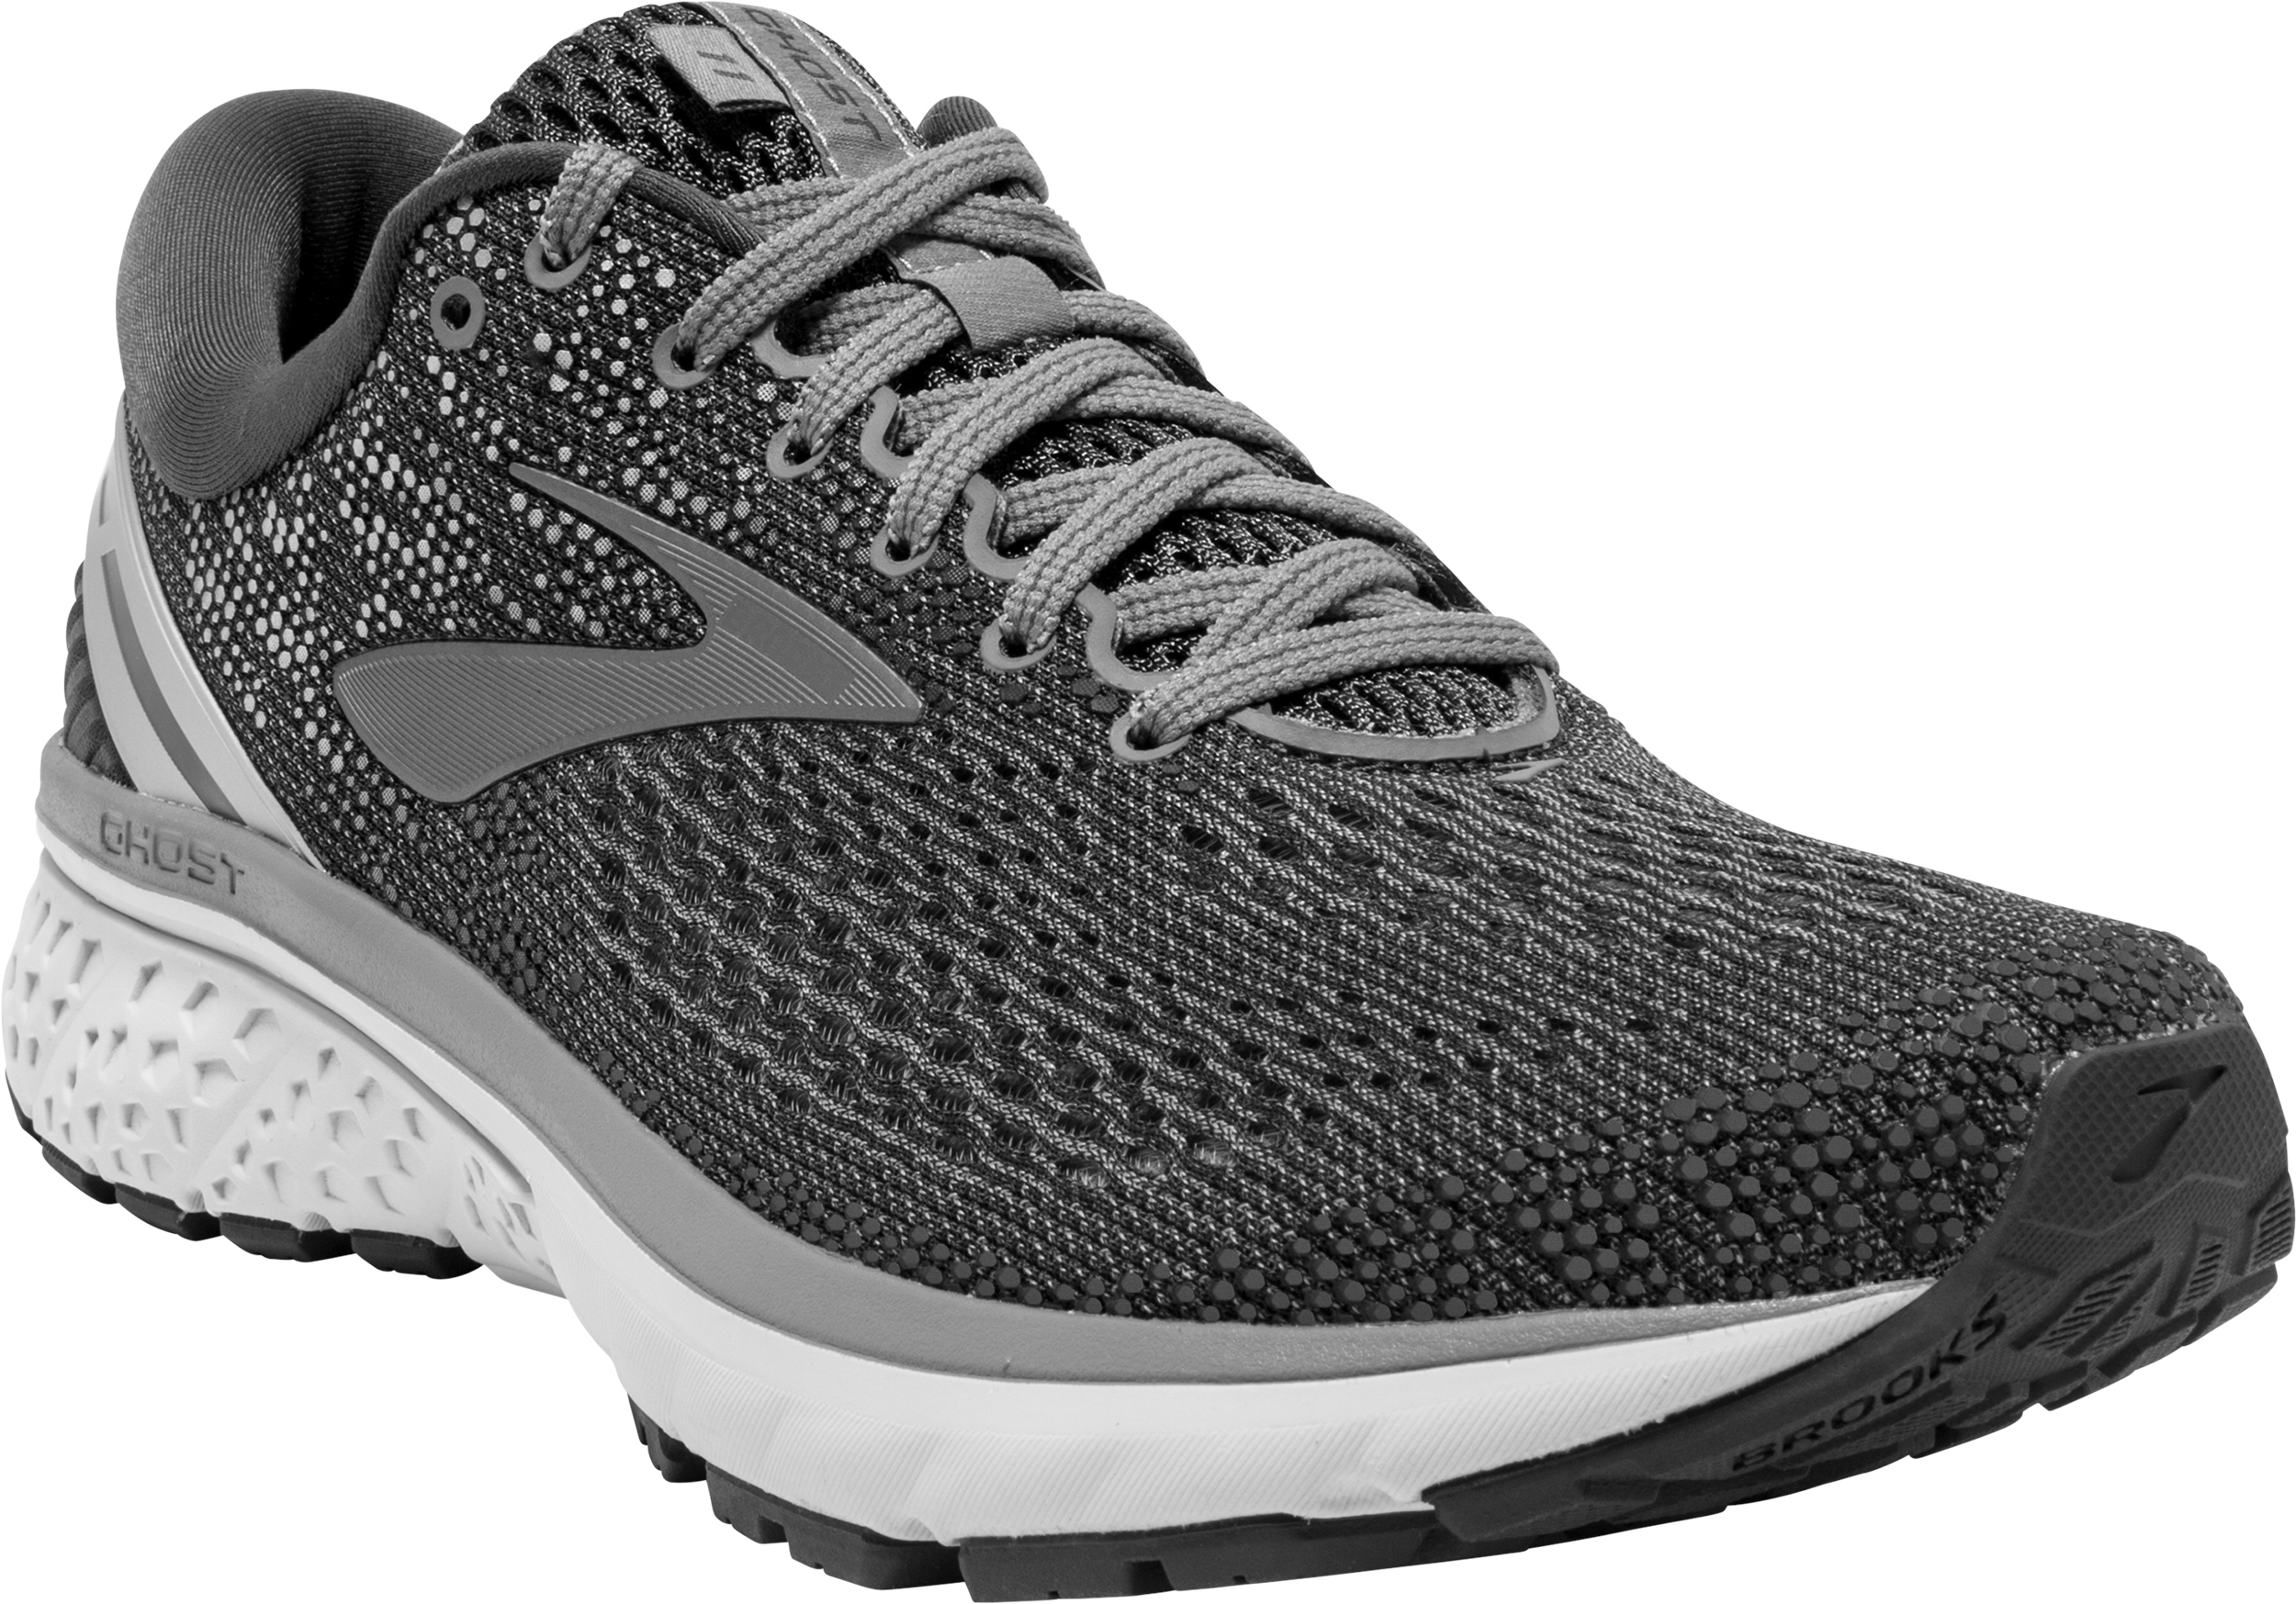 41c13bf8d2a Brooks Ghost 11 Road Running Shoes - Men s